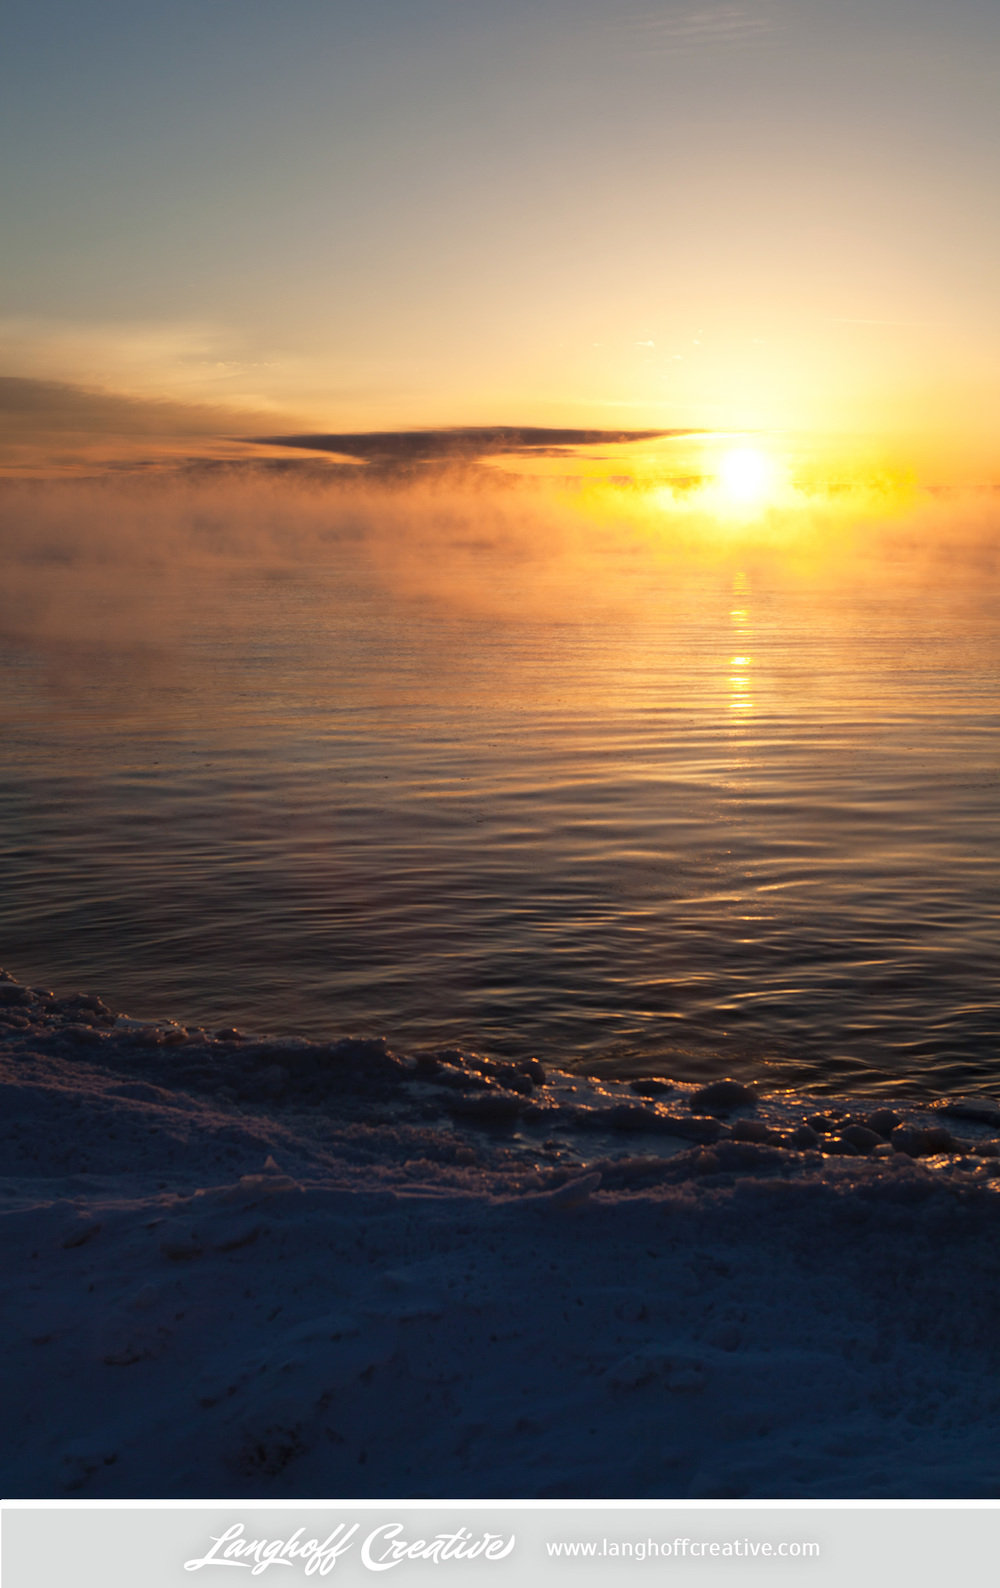 LanghoffCreative-LakeMichigan-winter-sunrise-Kenosha-Jan03-2014-photo-5.jpg